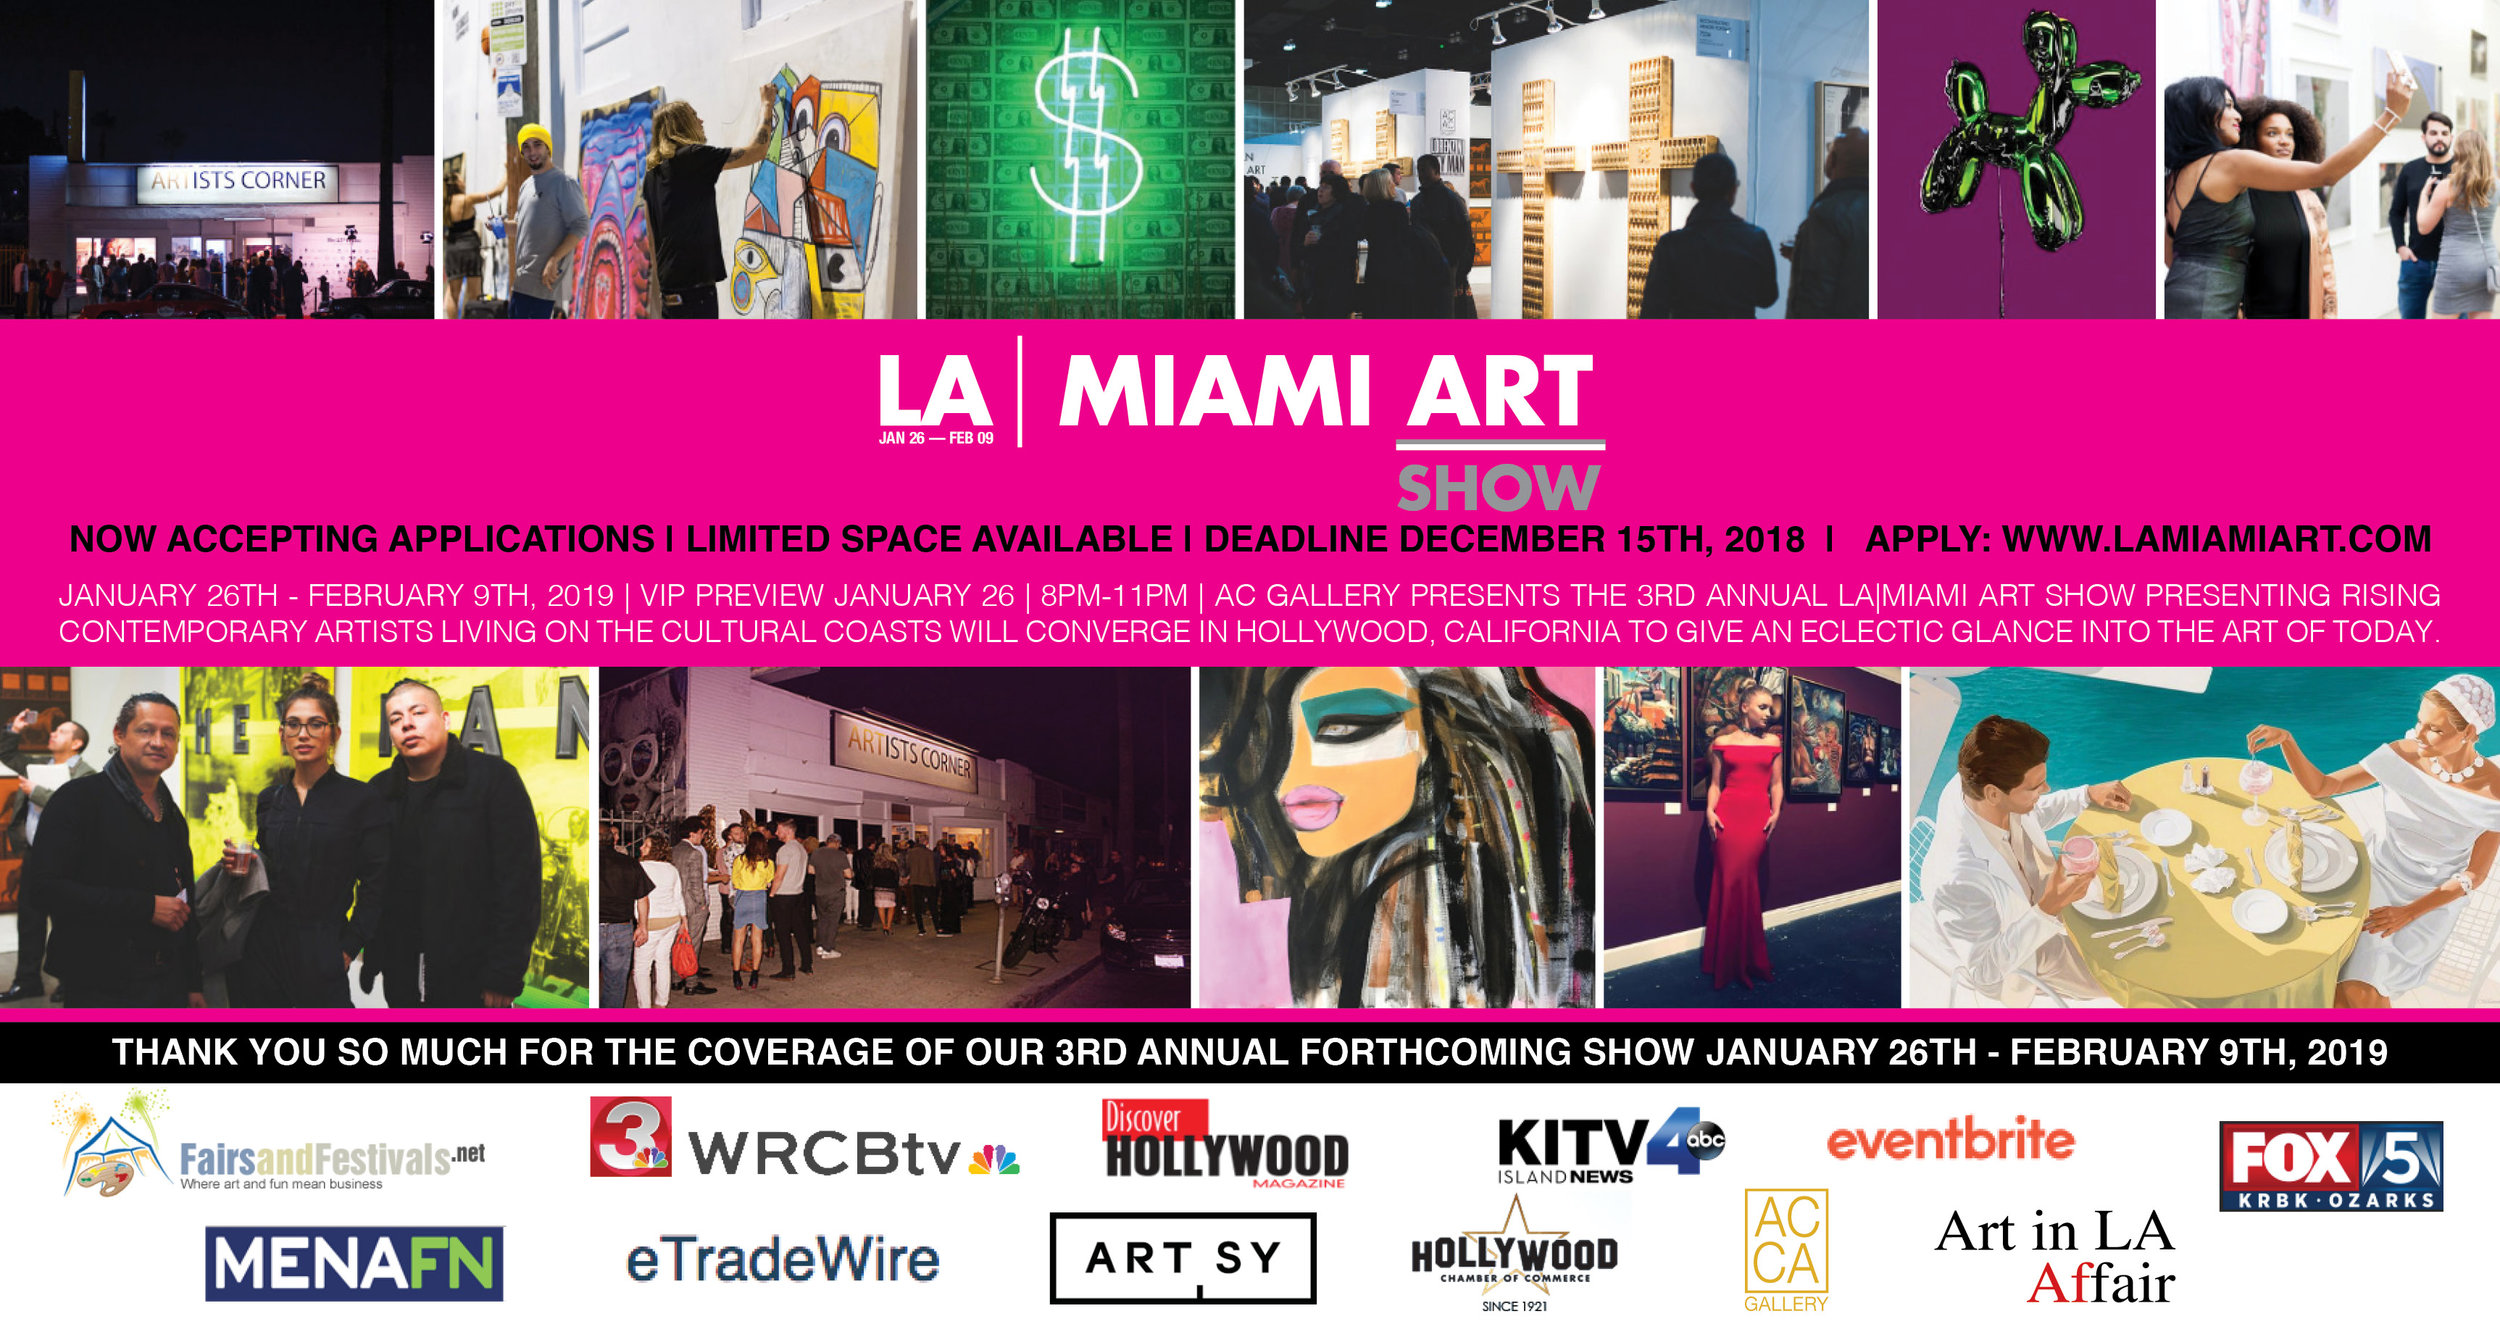 THANK YOU SO MUCH FOR THE COVERAGE OF OUR 3RD ANNUAL FORTHCOMING SHOW JANUARY 26TH-FEBRUARY 9TH, 2019.